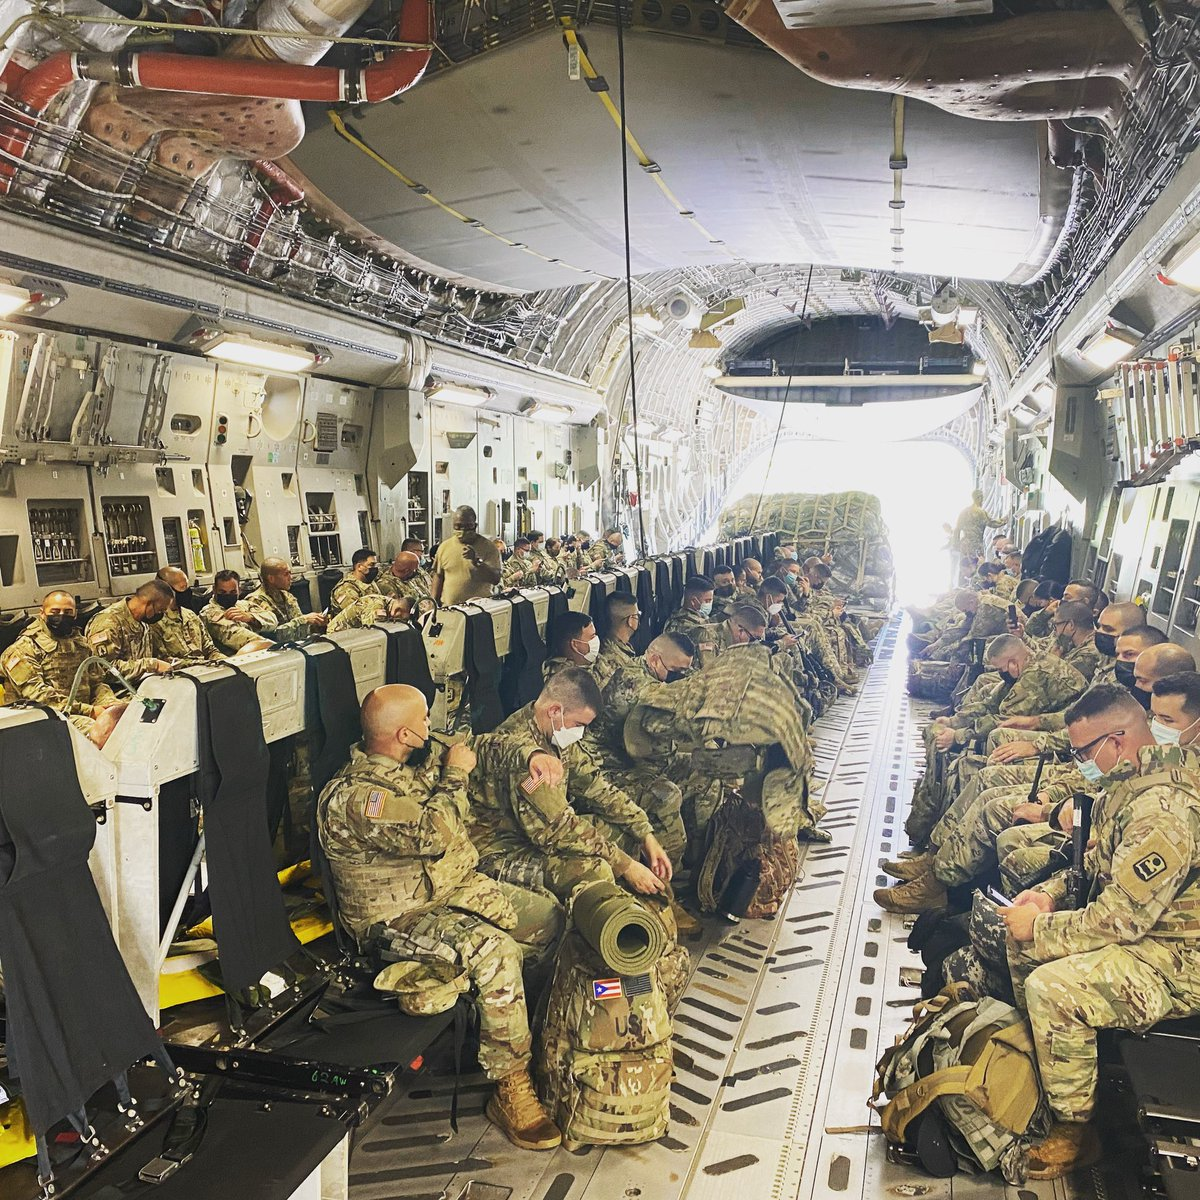 You see the soldiers in this picture? They are National Guardsmen from Puerto Rico, citizens, coming to Washington, DC to defend a Commander in Chief they could not vote for, a democratic federal republic in which they are denied representation in Congress or a presidential vote.